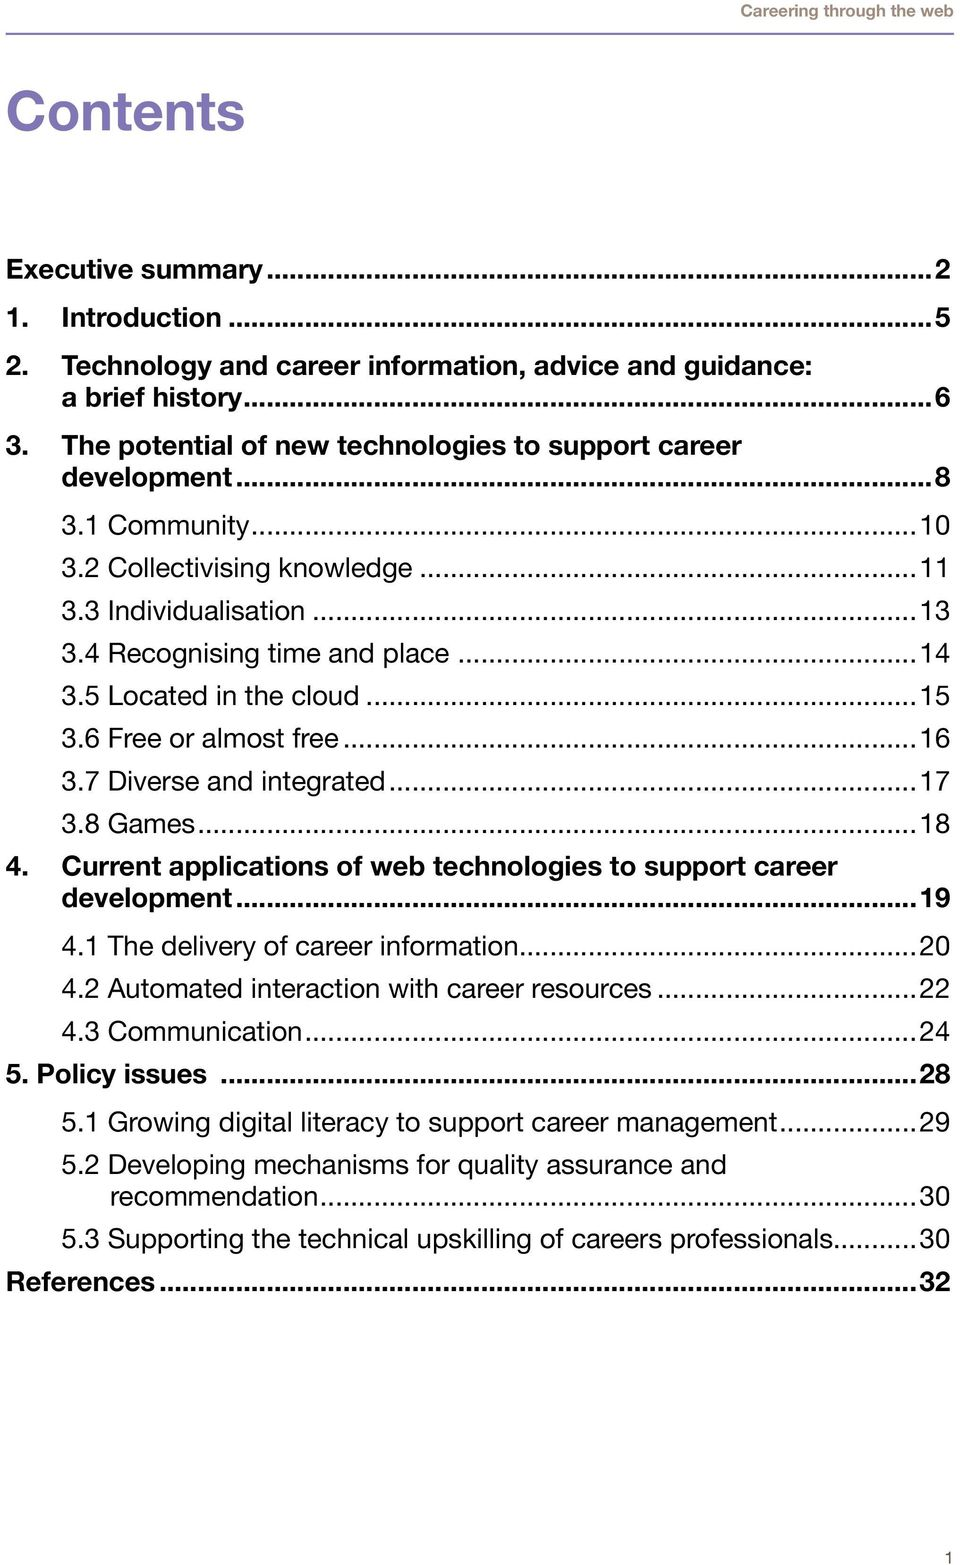 7 Diverse and integrated...17 3.8 Games...18 4. Current applications of web technologies to support career development...19 4.1 The delivery of career information...20 4.